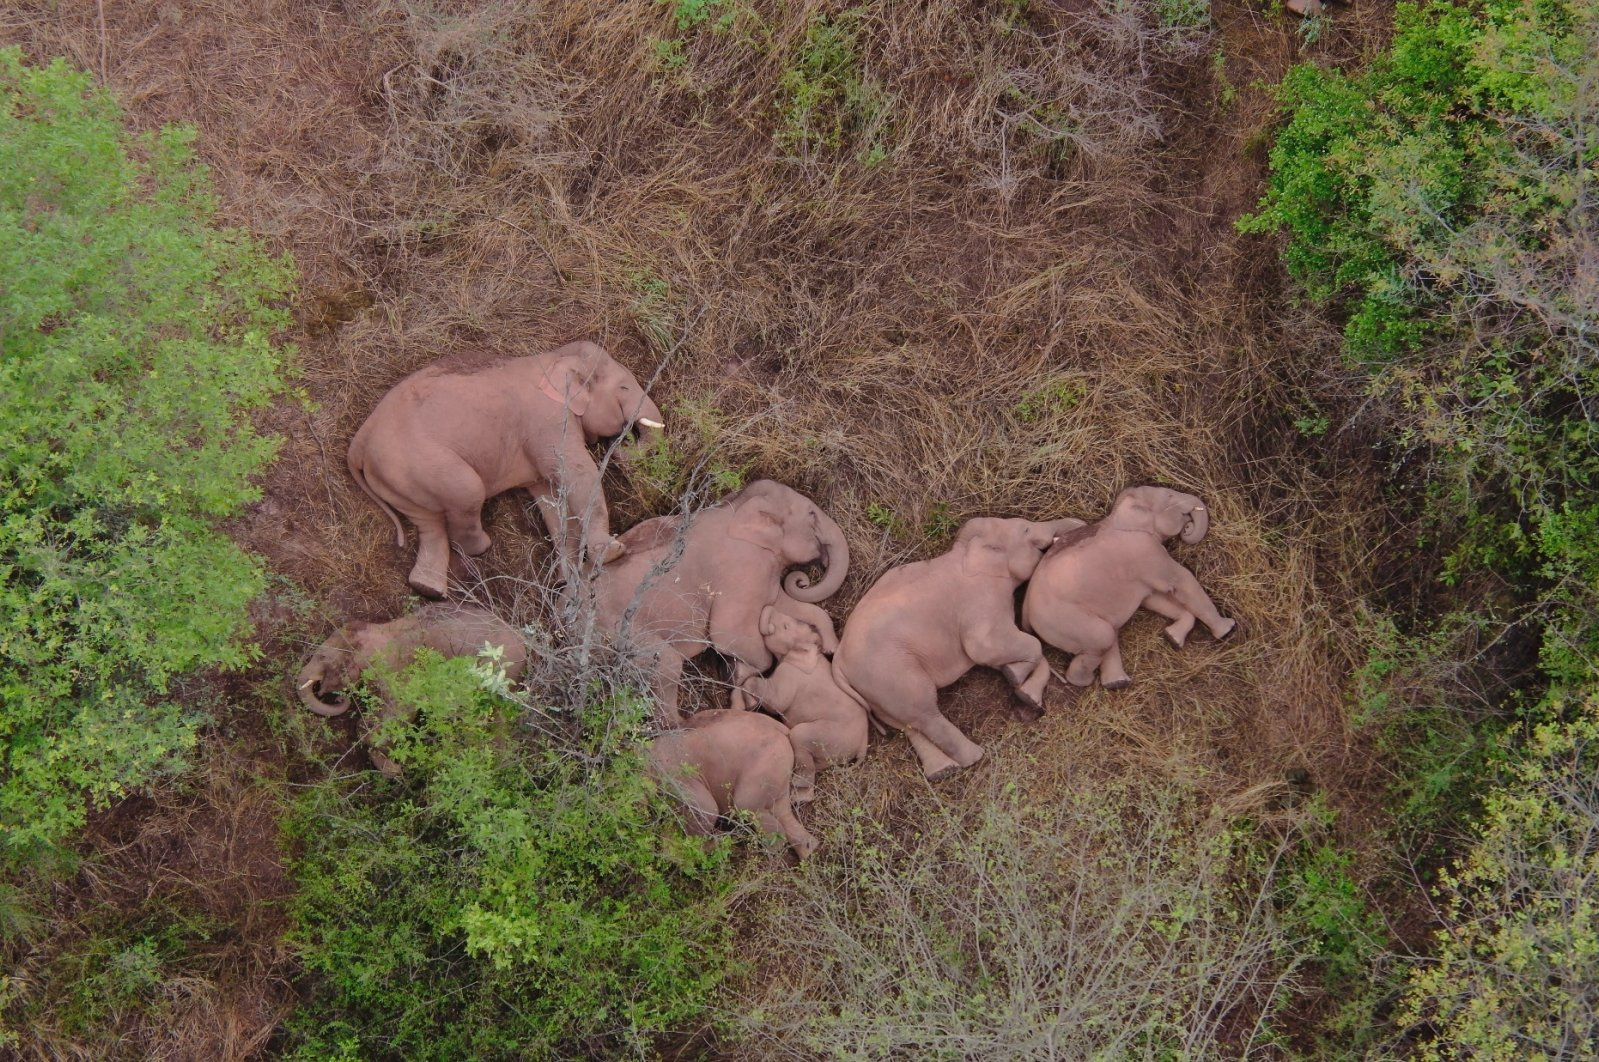 A migrating herd of elephants rests near the Xinyang Township in the Jinning District of Kunming city of southwestern China's Yunnan Province, June 7, 2021. (Yunnan Forest Fire Brigade via AP)